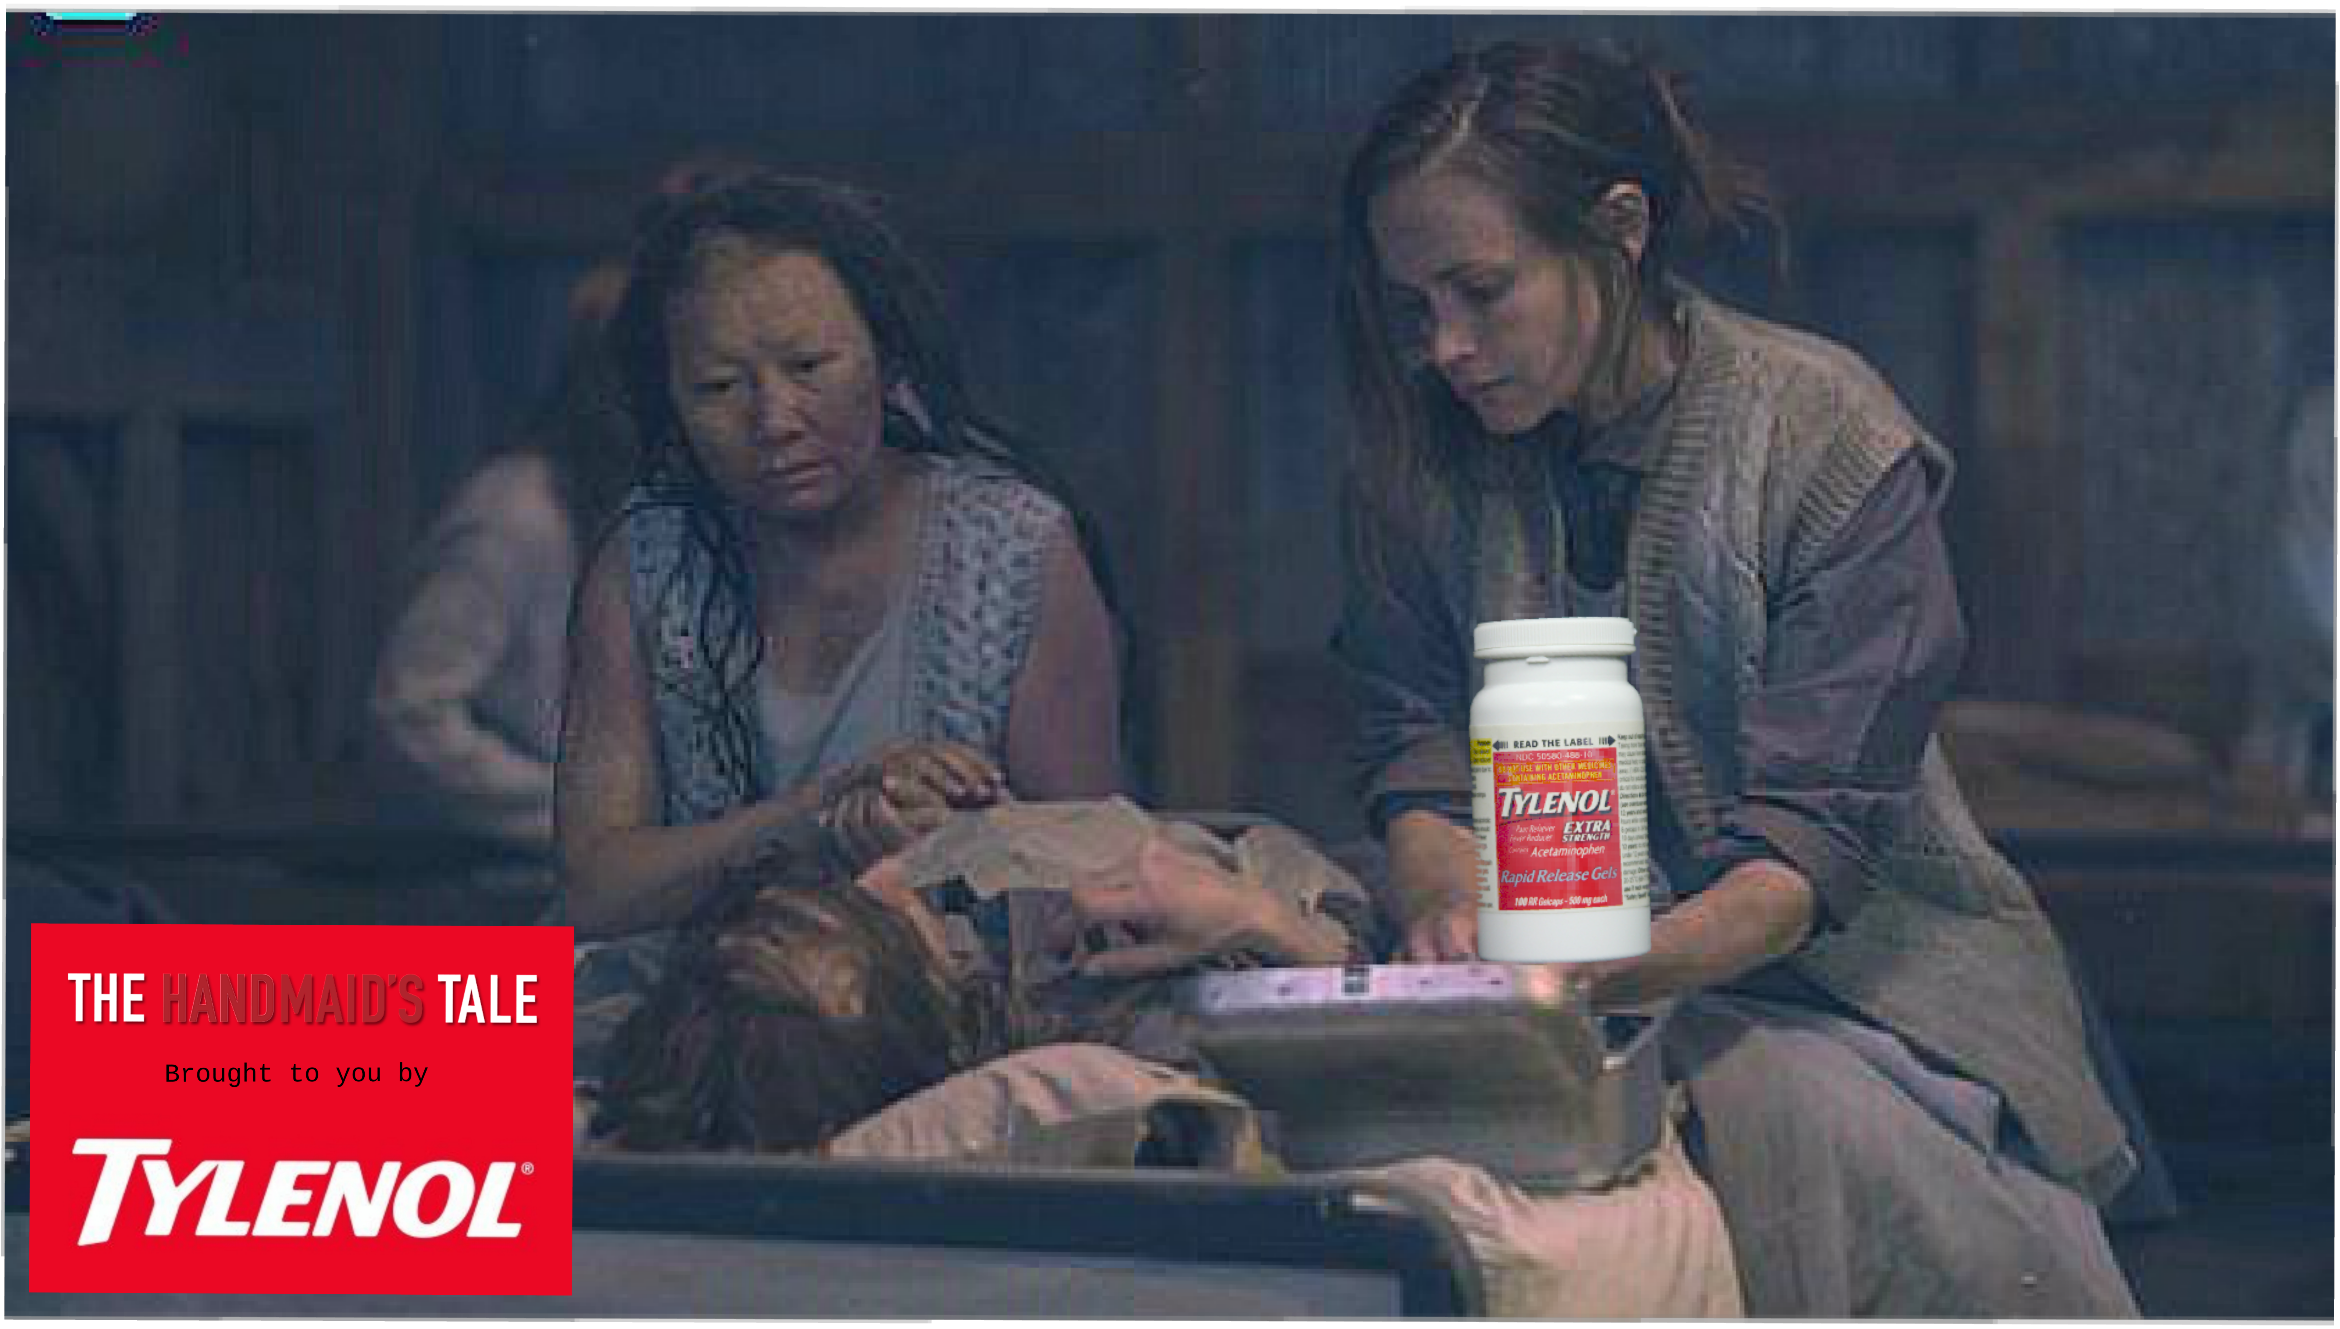 Handmaid's Tale: Brought to you by Tylenol.